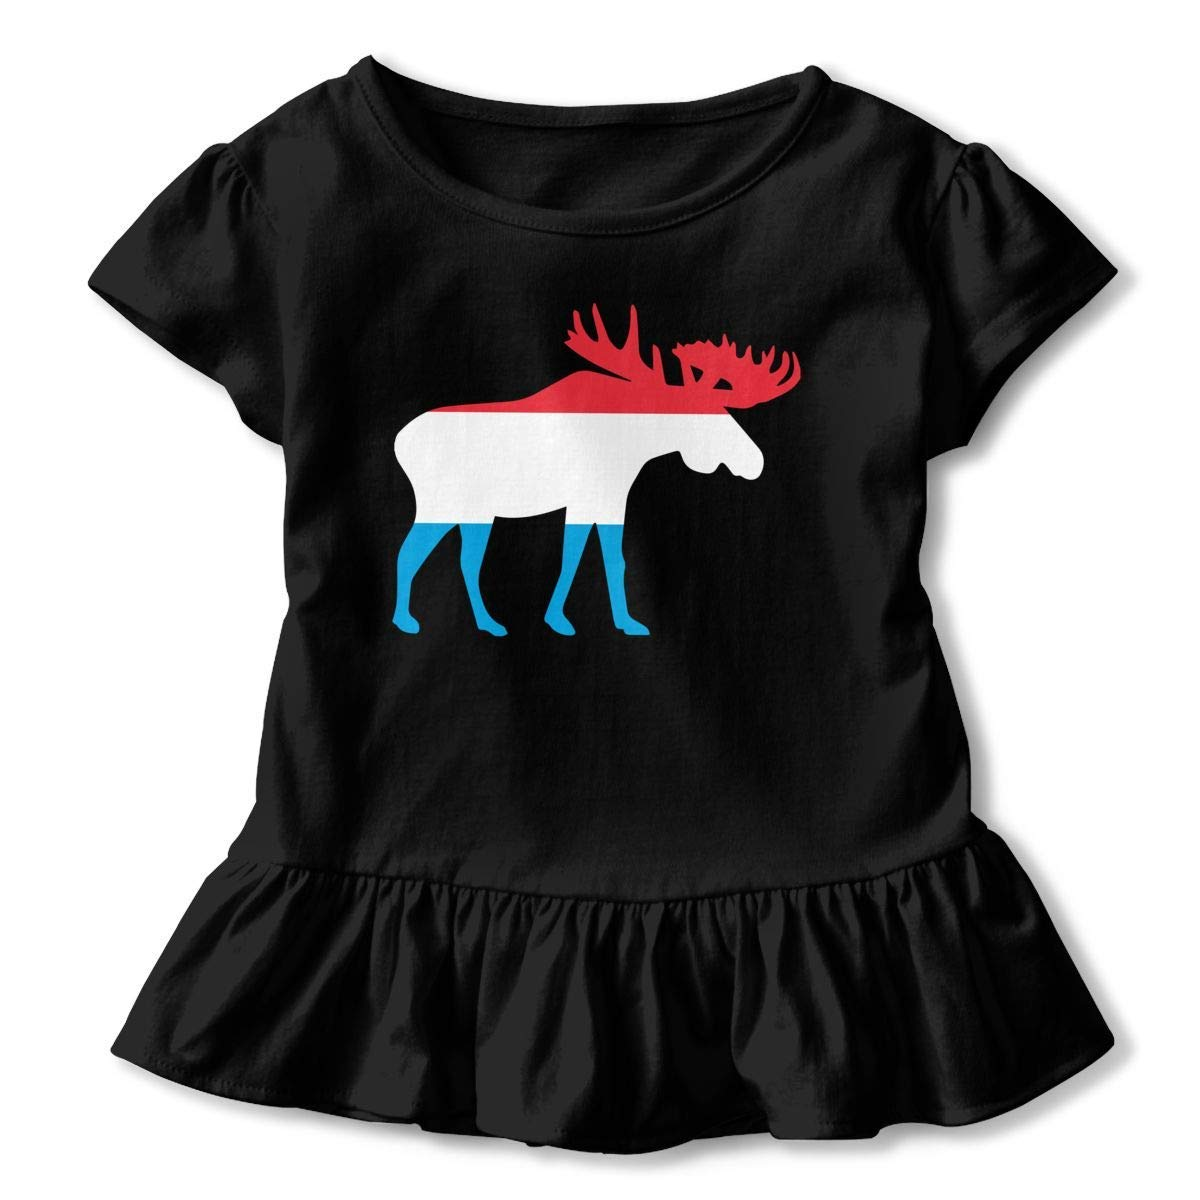 Casual Tunic Shirt Dress with Falbala PMsunglasses Short Sleeve Luxembourg Moose Shirts for Children 2-6T